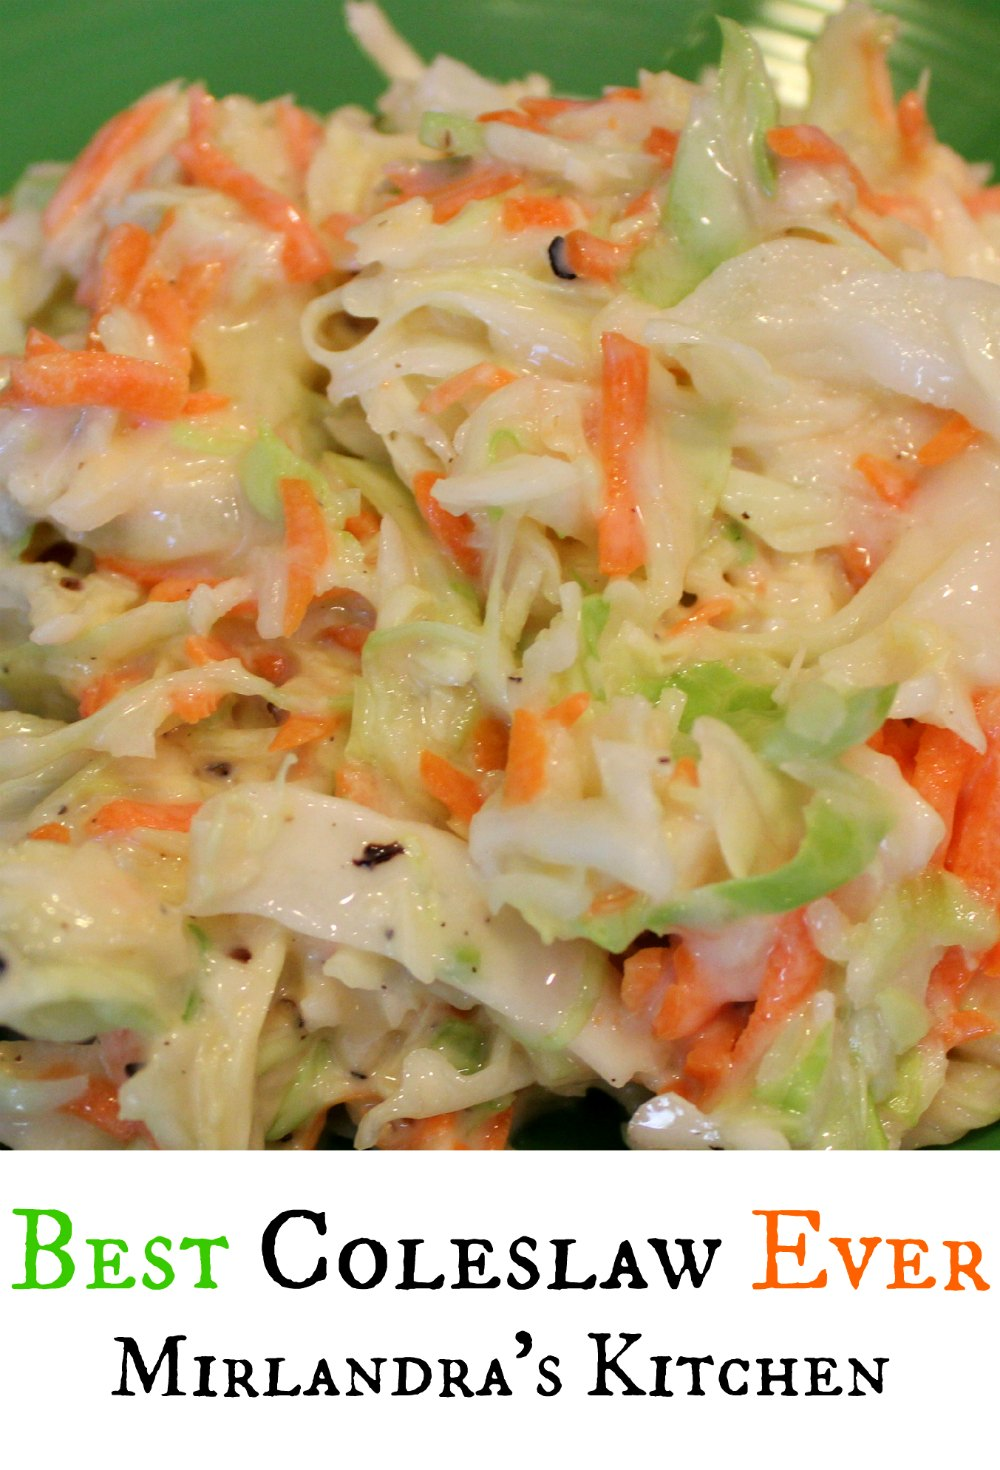 Quite simply the best coleslaw. This recipe is flavorful, sweet and tangy but not heavy or gooey. It is absolutely perfect with pulled pork or fried fish.